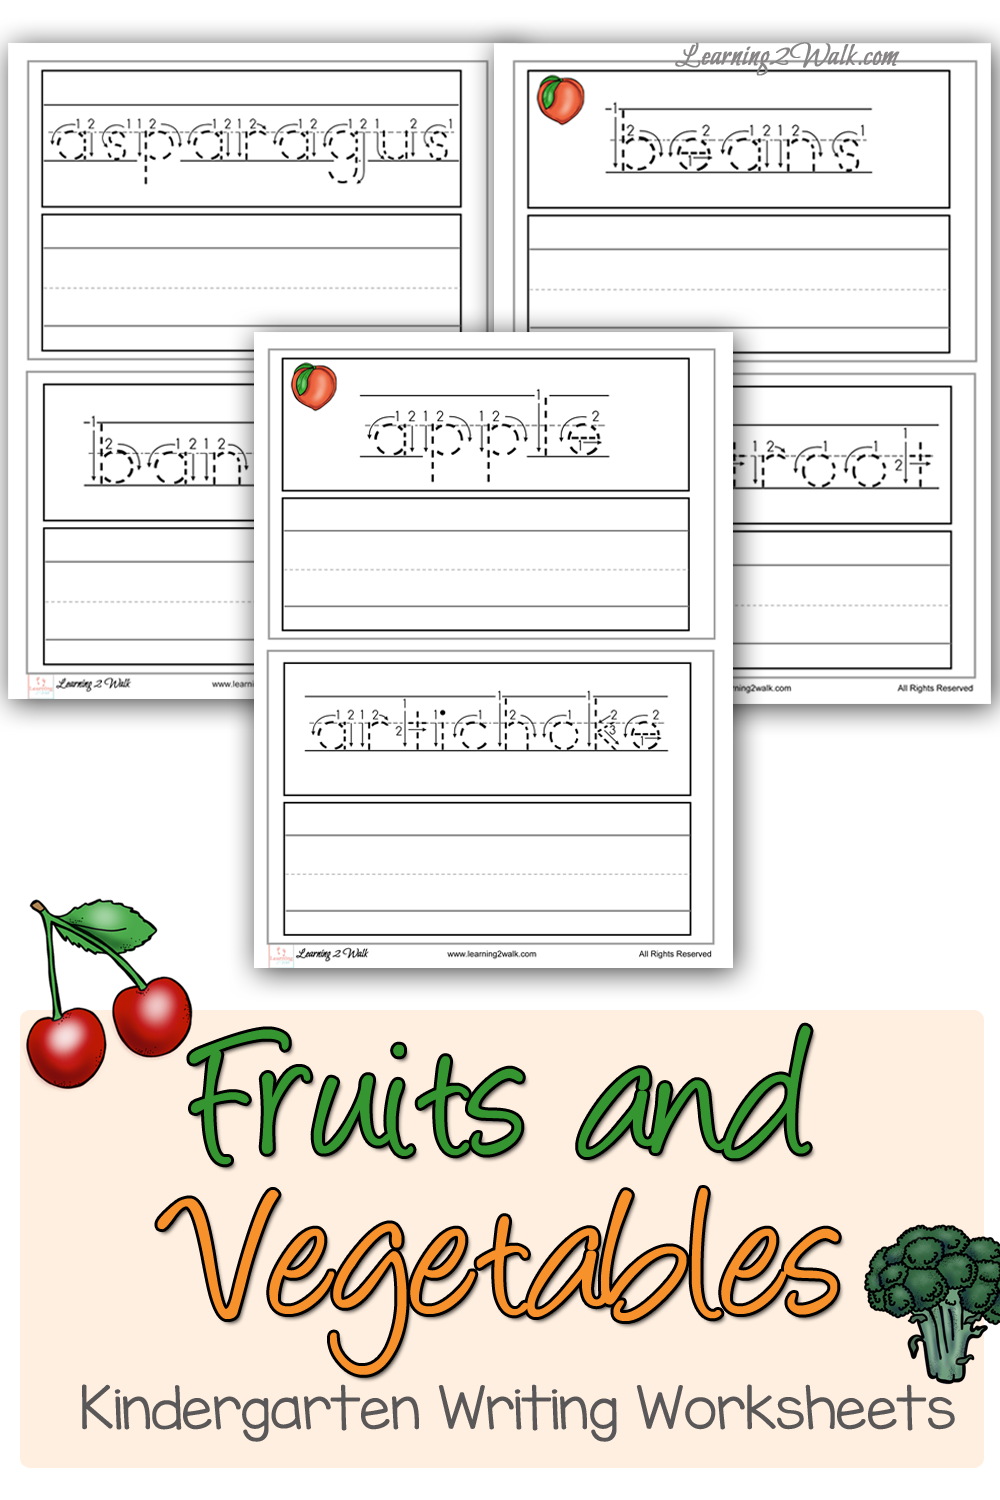 Preschool counting fruits worksheet printable - Are You Looking For Some Fruit And Vegetable Themed Kindergarten Writing Worksheets Try This Free